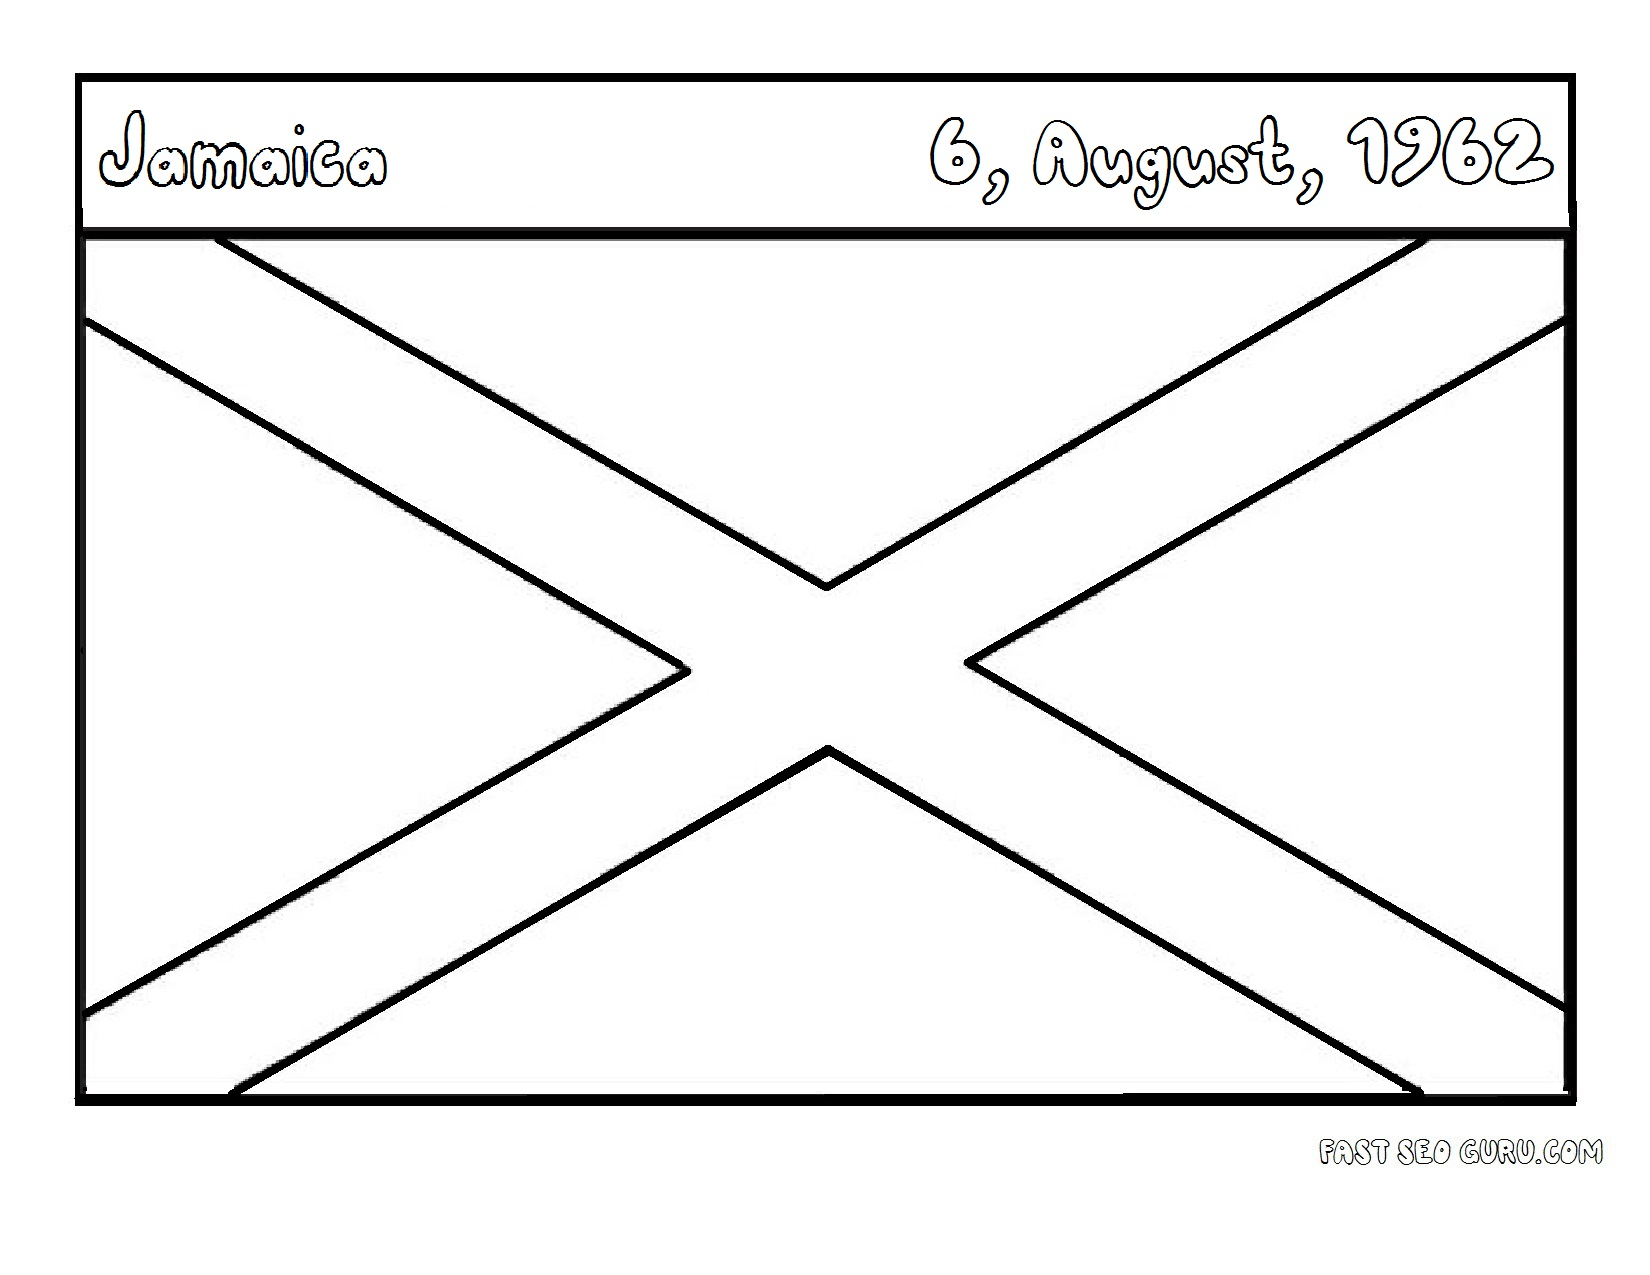 Flags Of Jamaica Coloring Page For Kids